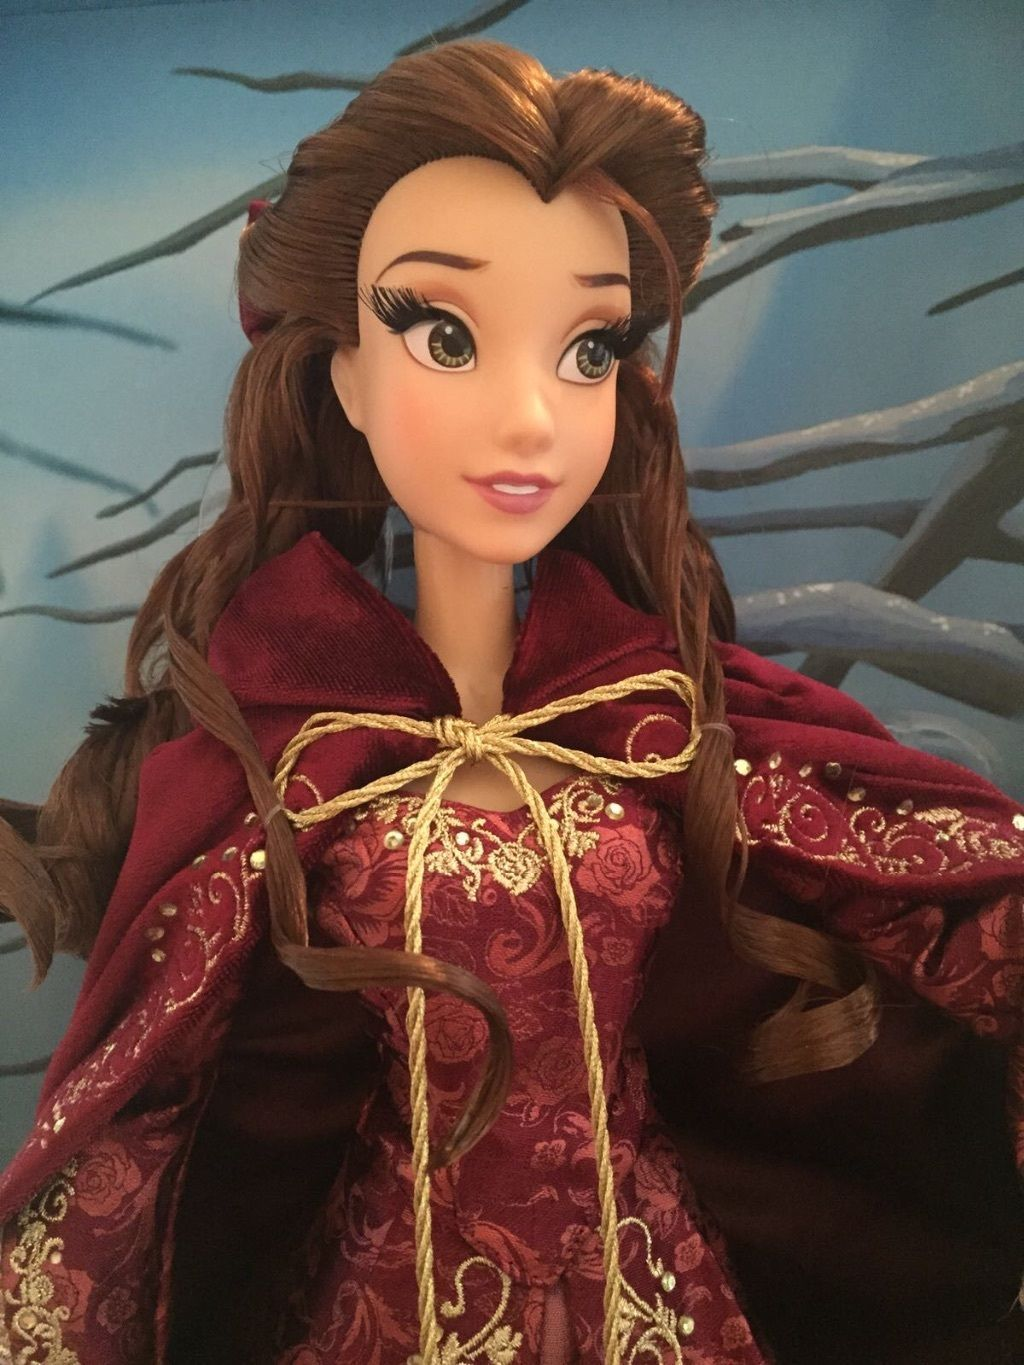 Jessica rabbit special edition doll by disney collectors dolls dark - Belle Limited Edition Disney 17 Inch Doll Beauty And The Beast Ebay